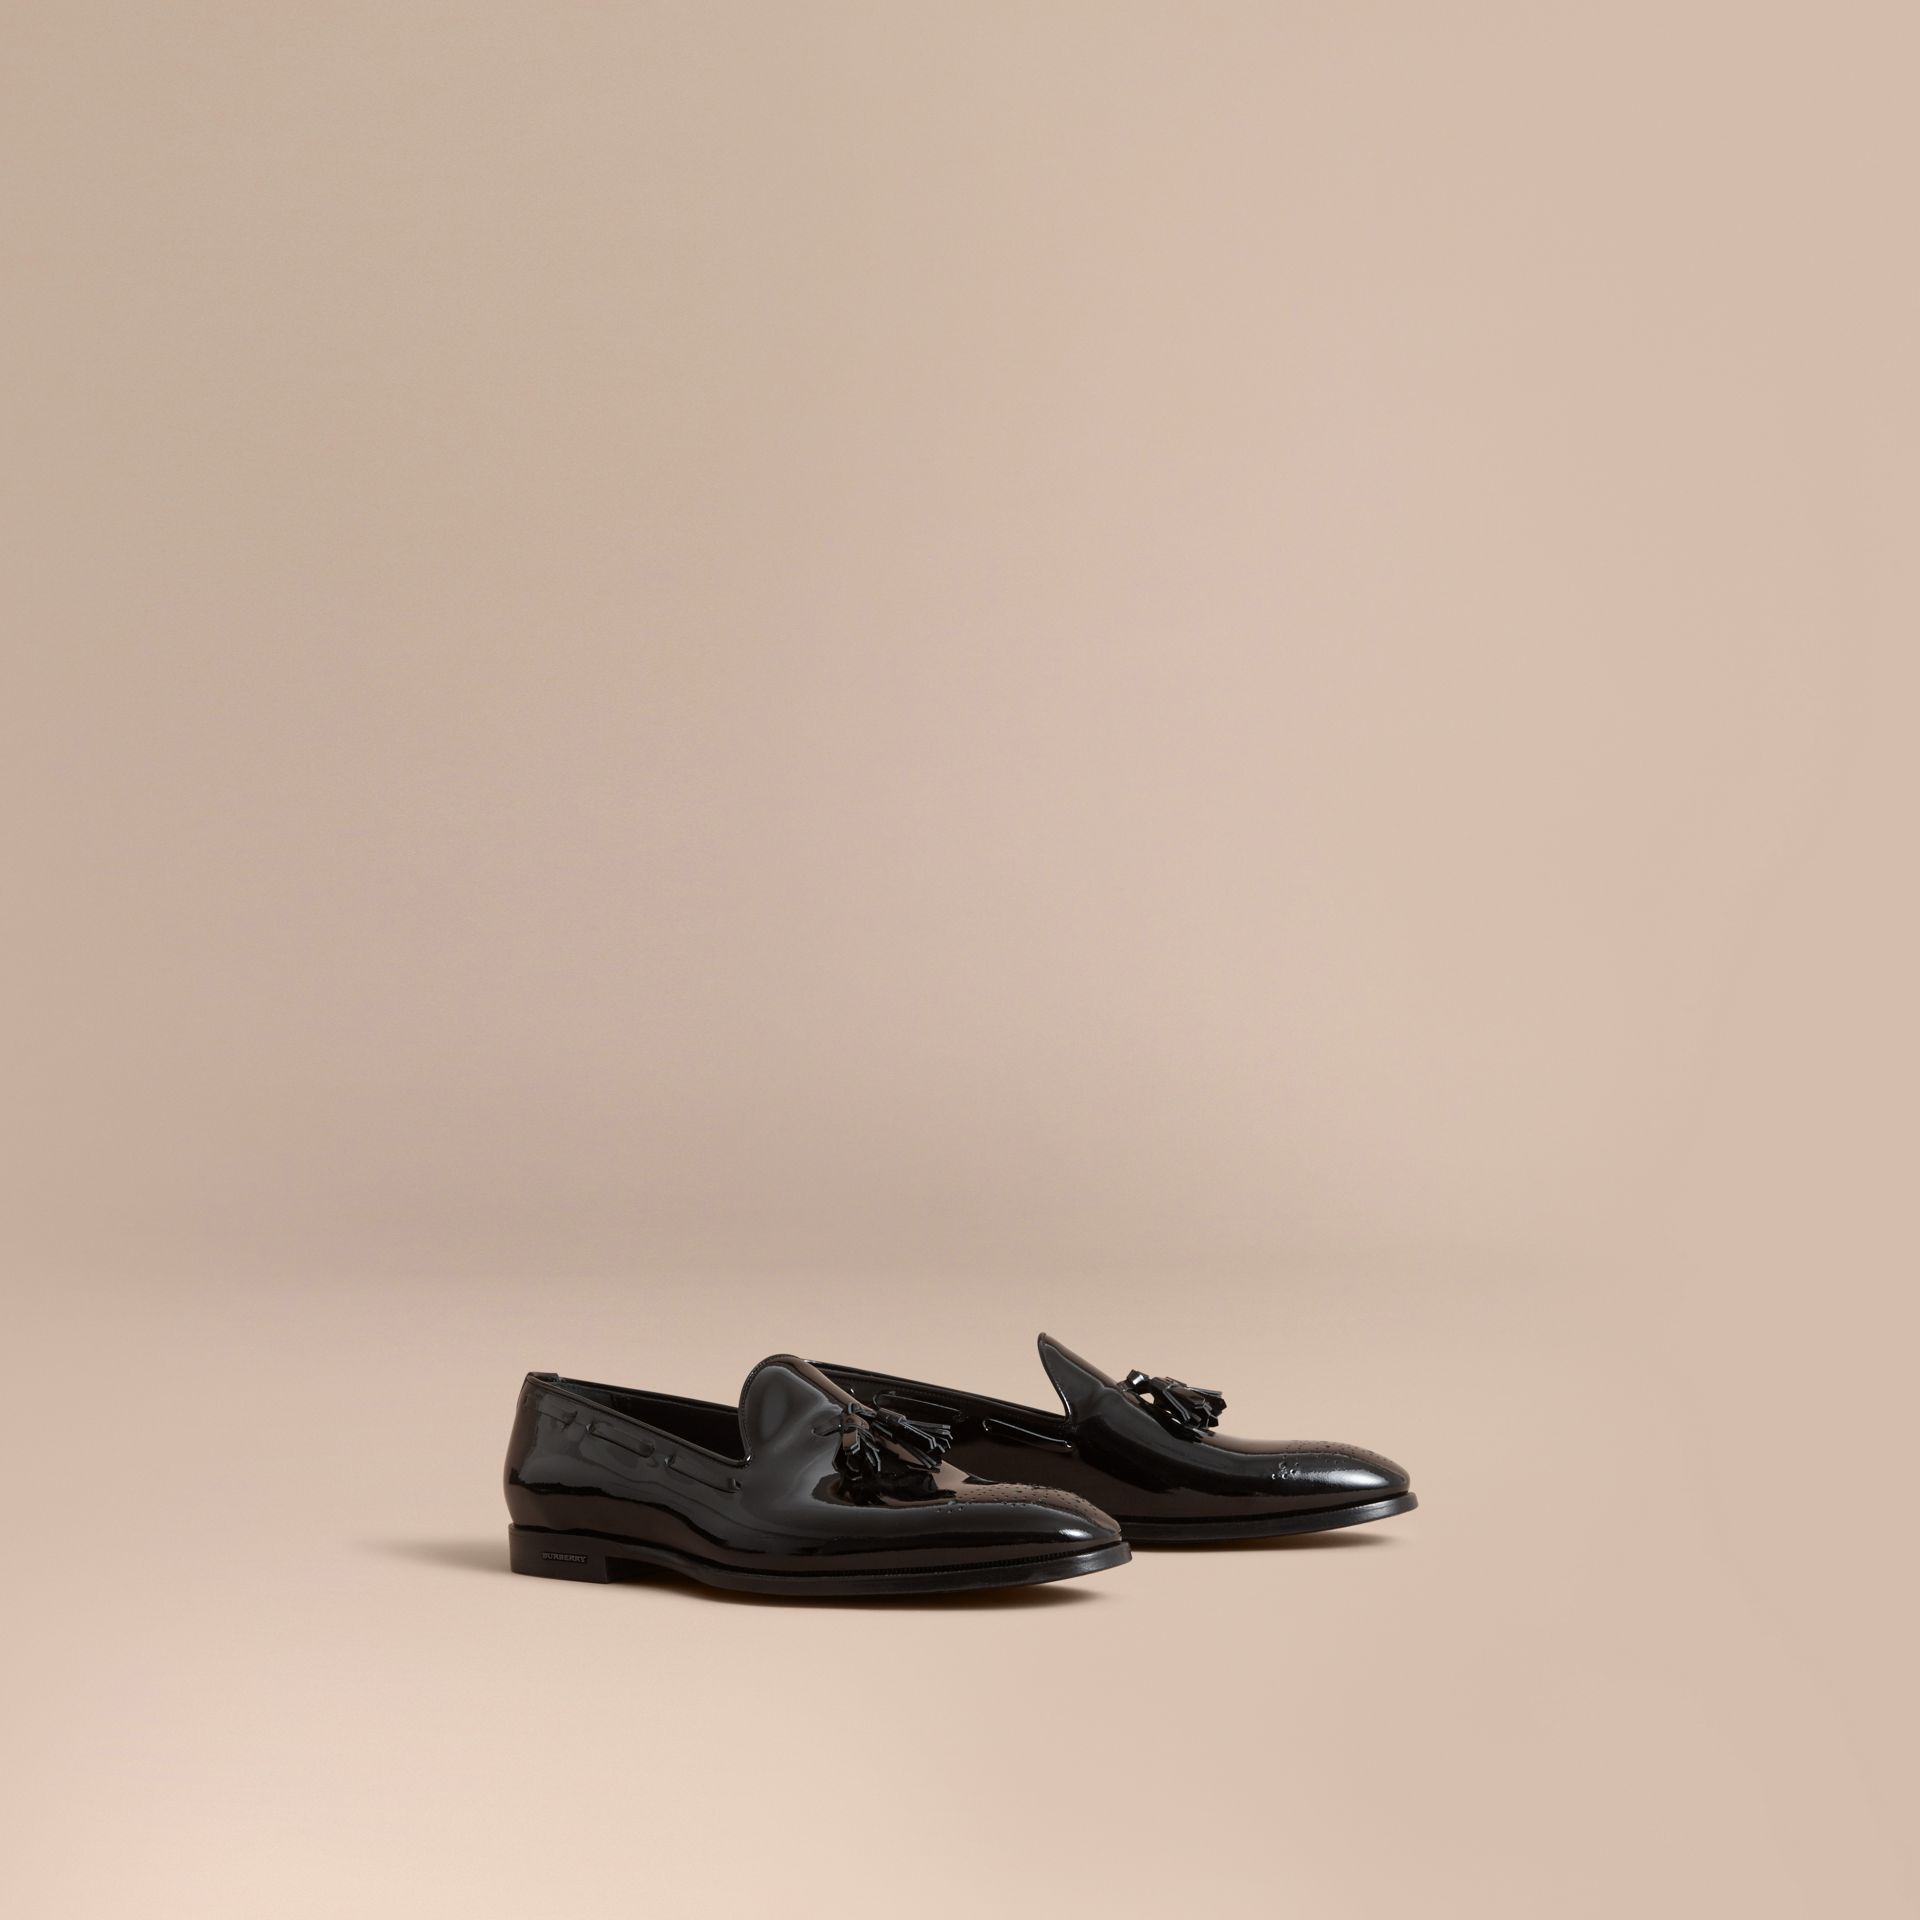 Tasselled Patent Leather Loafers in Black - Men | Burberry - gallery image 0